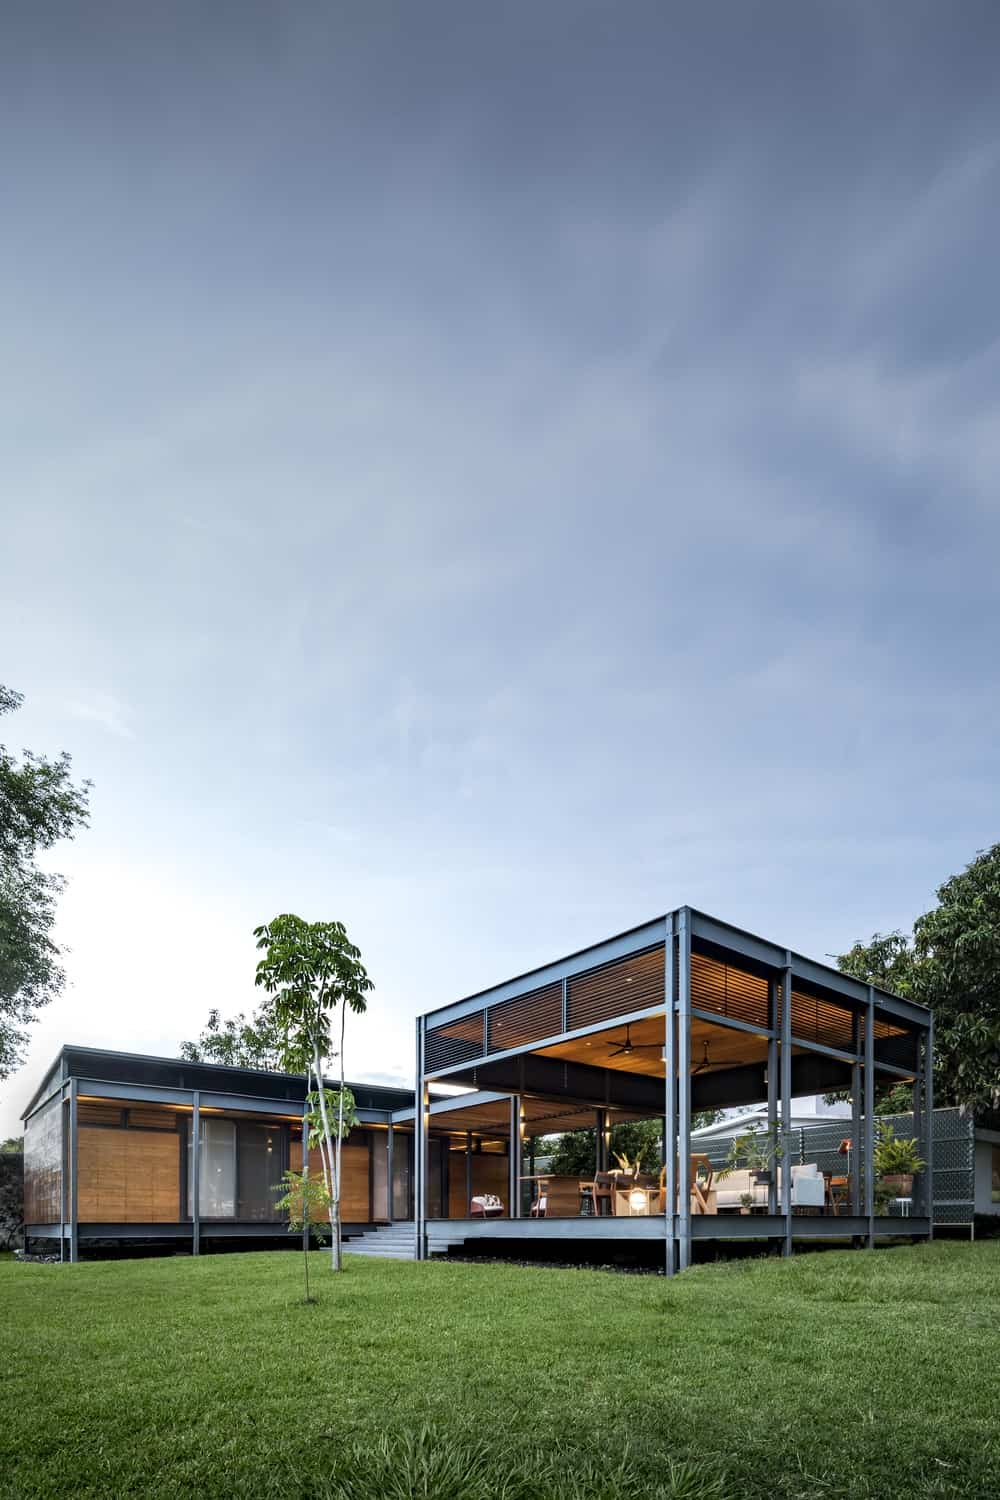 This is a look at the exterior of the house that has metal frames complemented by the surrounding minimalist landscaping of grass lawns and trees.